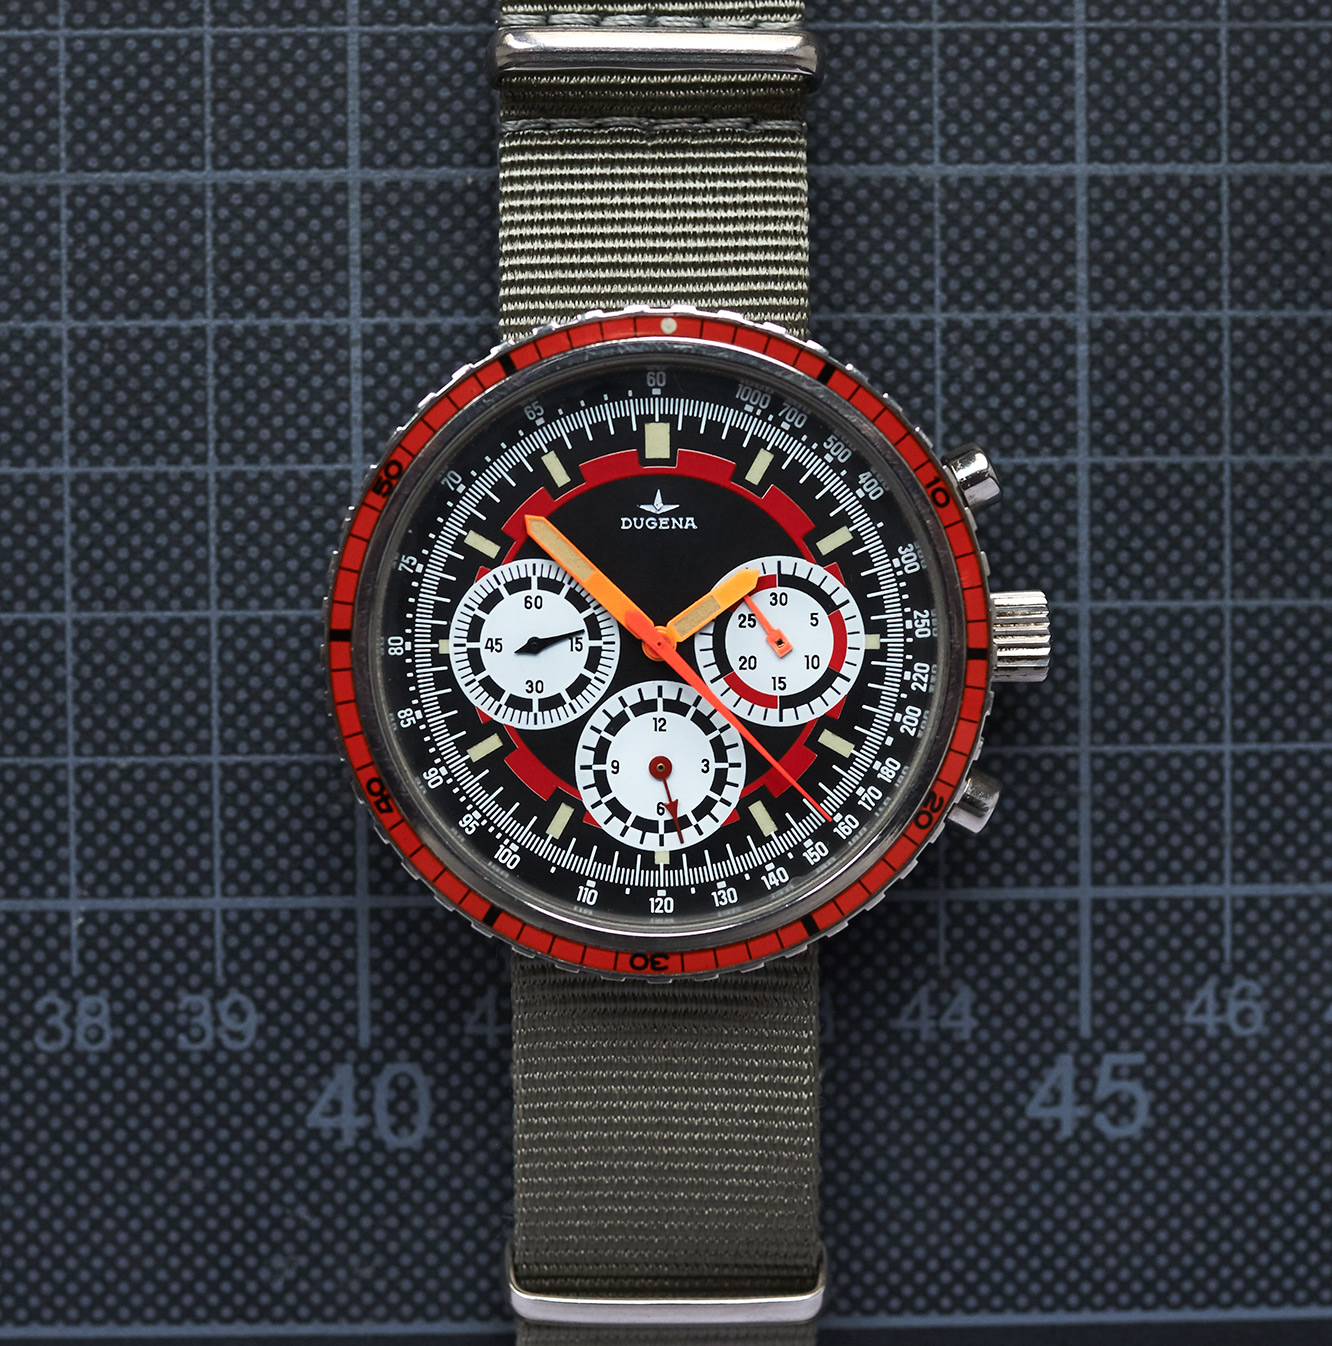 Dugena chronograph from the 70´s